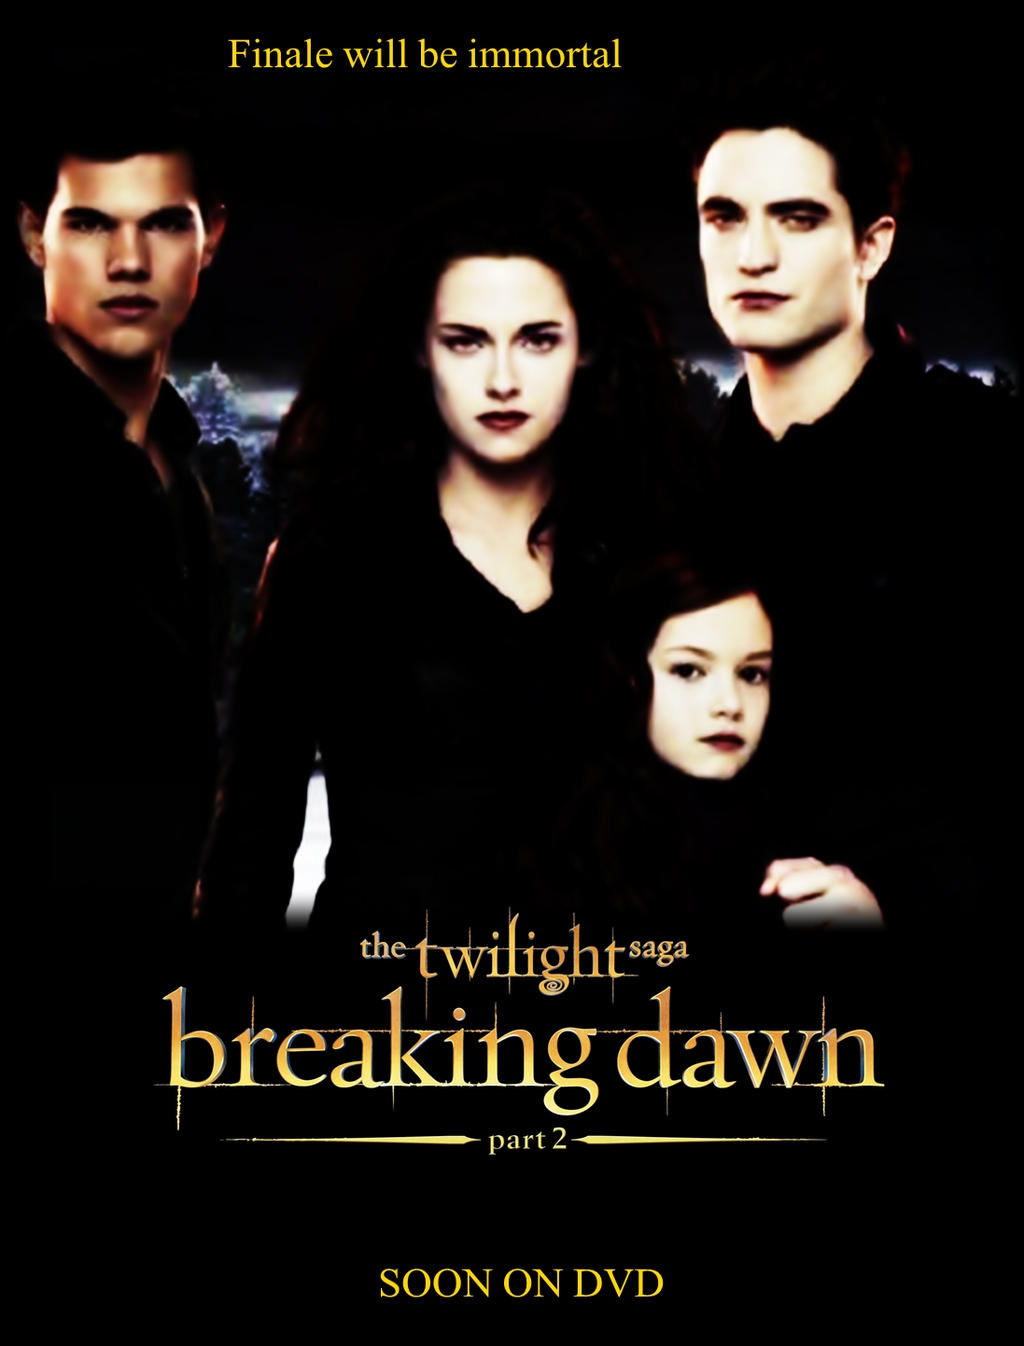 breaking dawn between the book and movies essay Twilight encourages abstinence until marriage, and although the final novel, breaking dawn, has some underlying sexual themes, they purely pertain to the plot and are not described in scenes, only referenced to still, the novels are far cleaner than content found in other books written for the same age range, television, movies, and magazines.